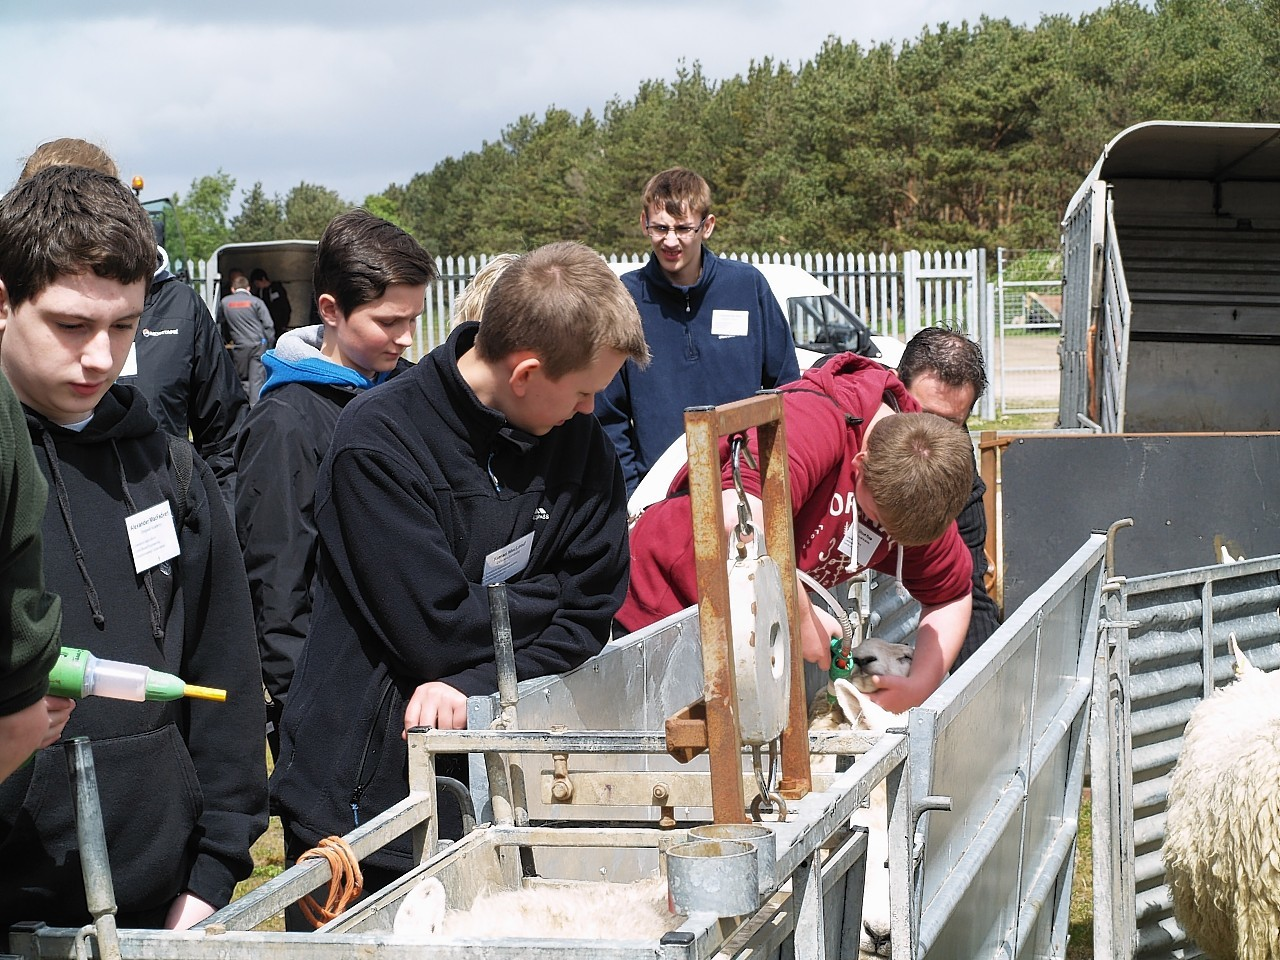 The bursary scheme aims to help youngsters in the Highlands and islands